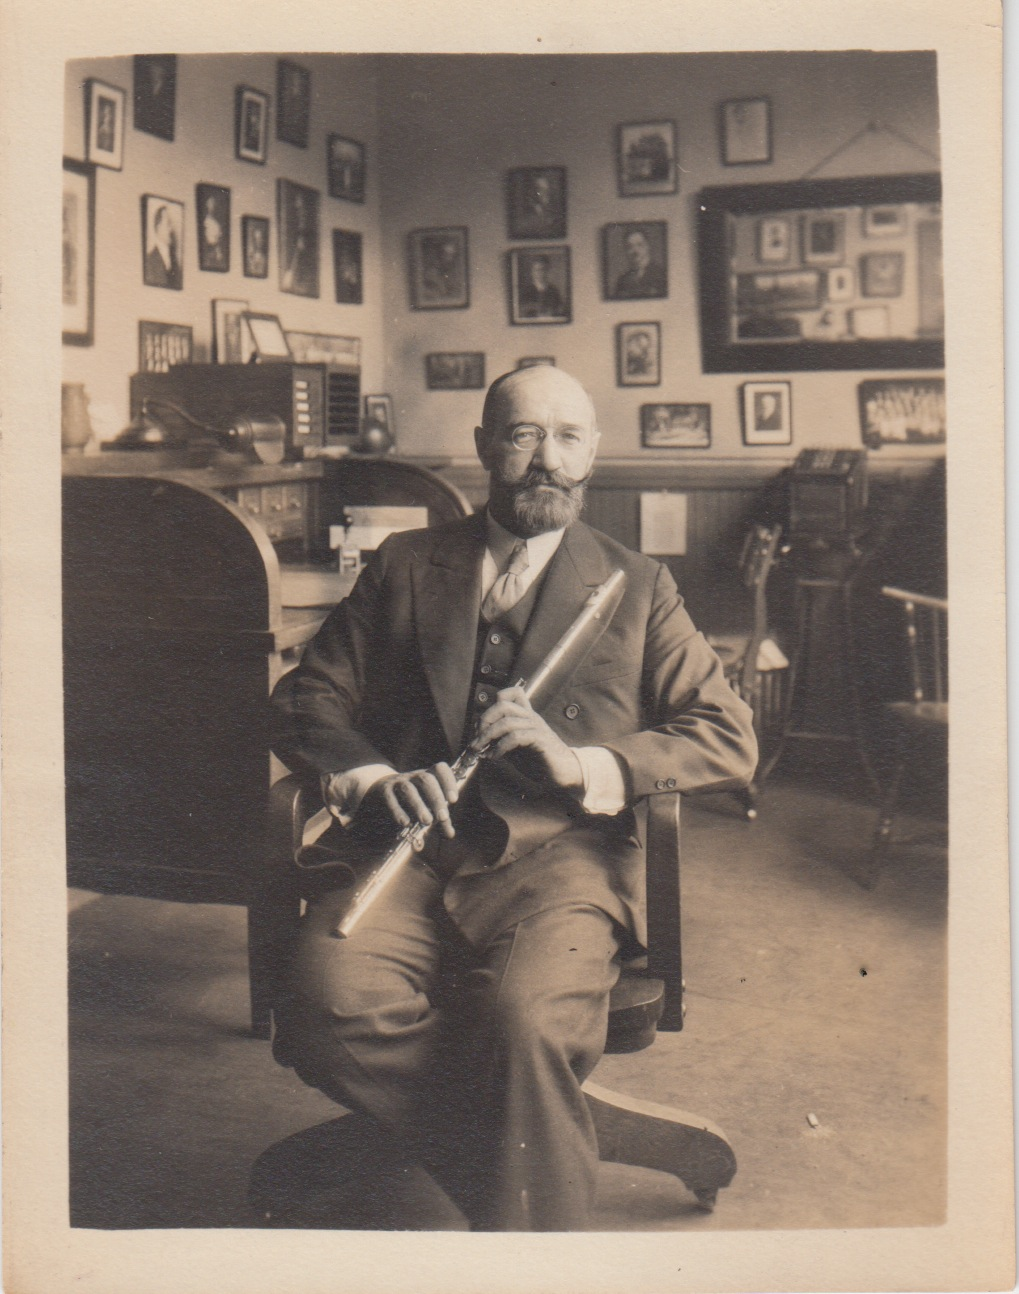 1919 – Georges Barrère, then principal flutist with the New York Symphony, becomes Artist Advisor to the company. - Together Haynes and Barrère developed the American version of the French Flute. The initial models had